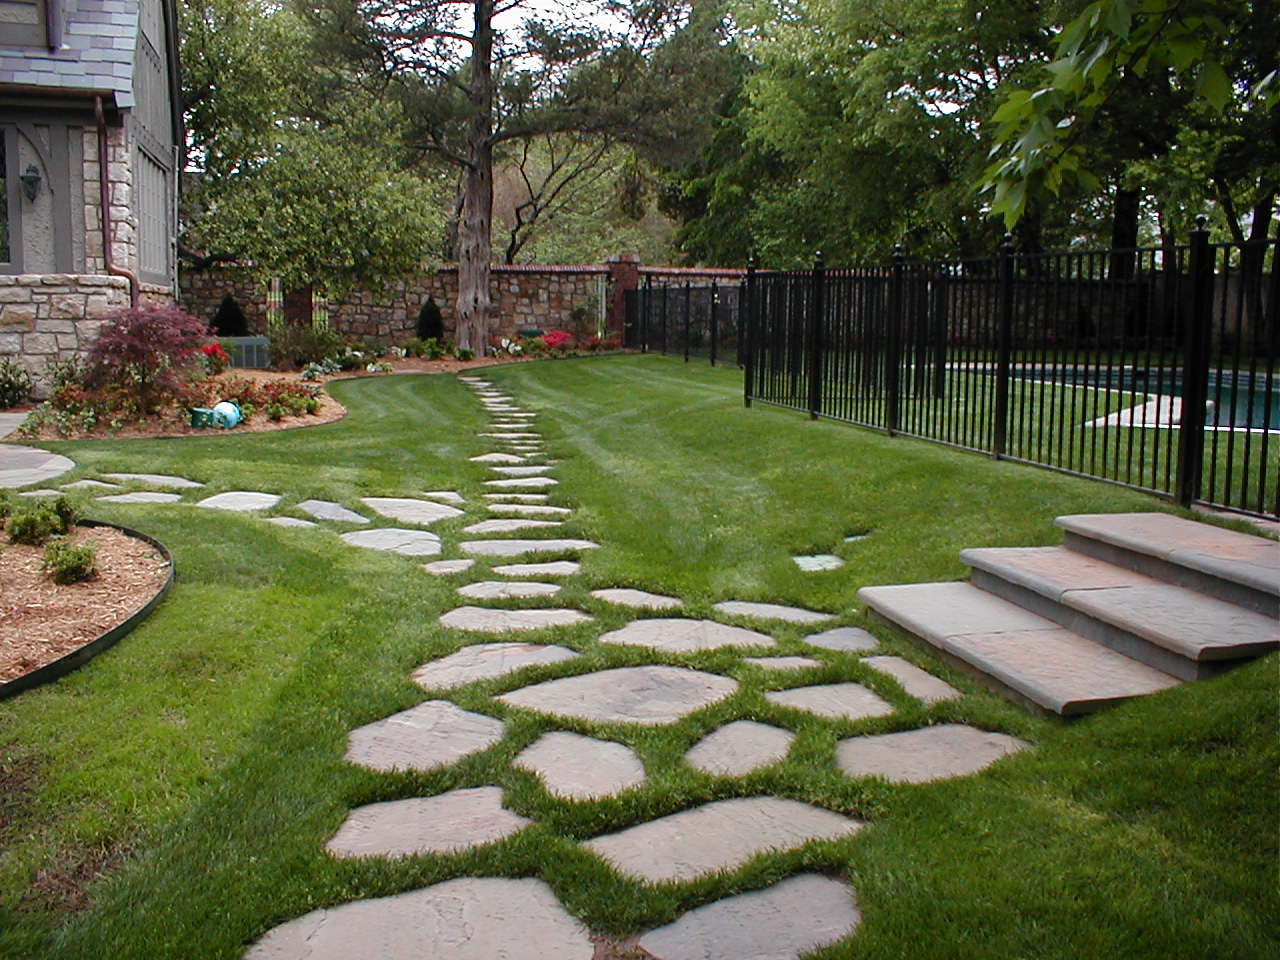 Enchanting Small Garden Landscape Ideas With Stepping Walk: Backyard Landscape Hardscape Ideas In Tulsa